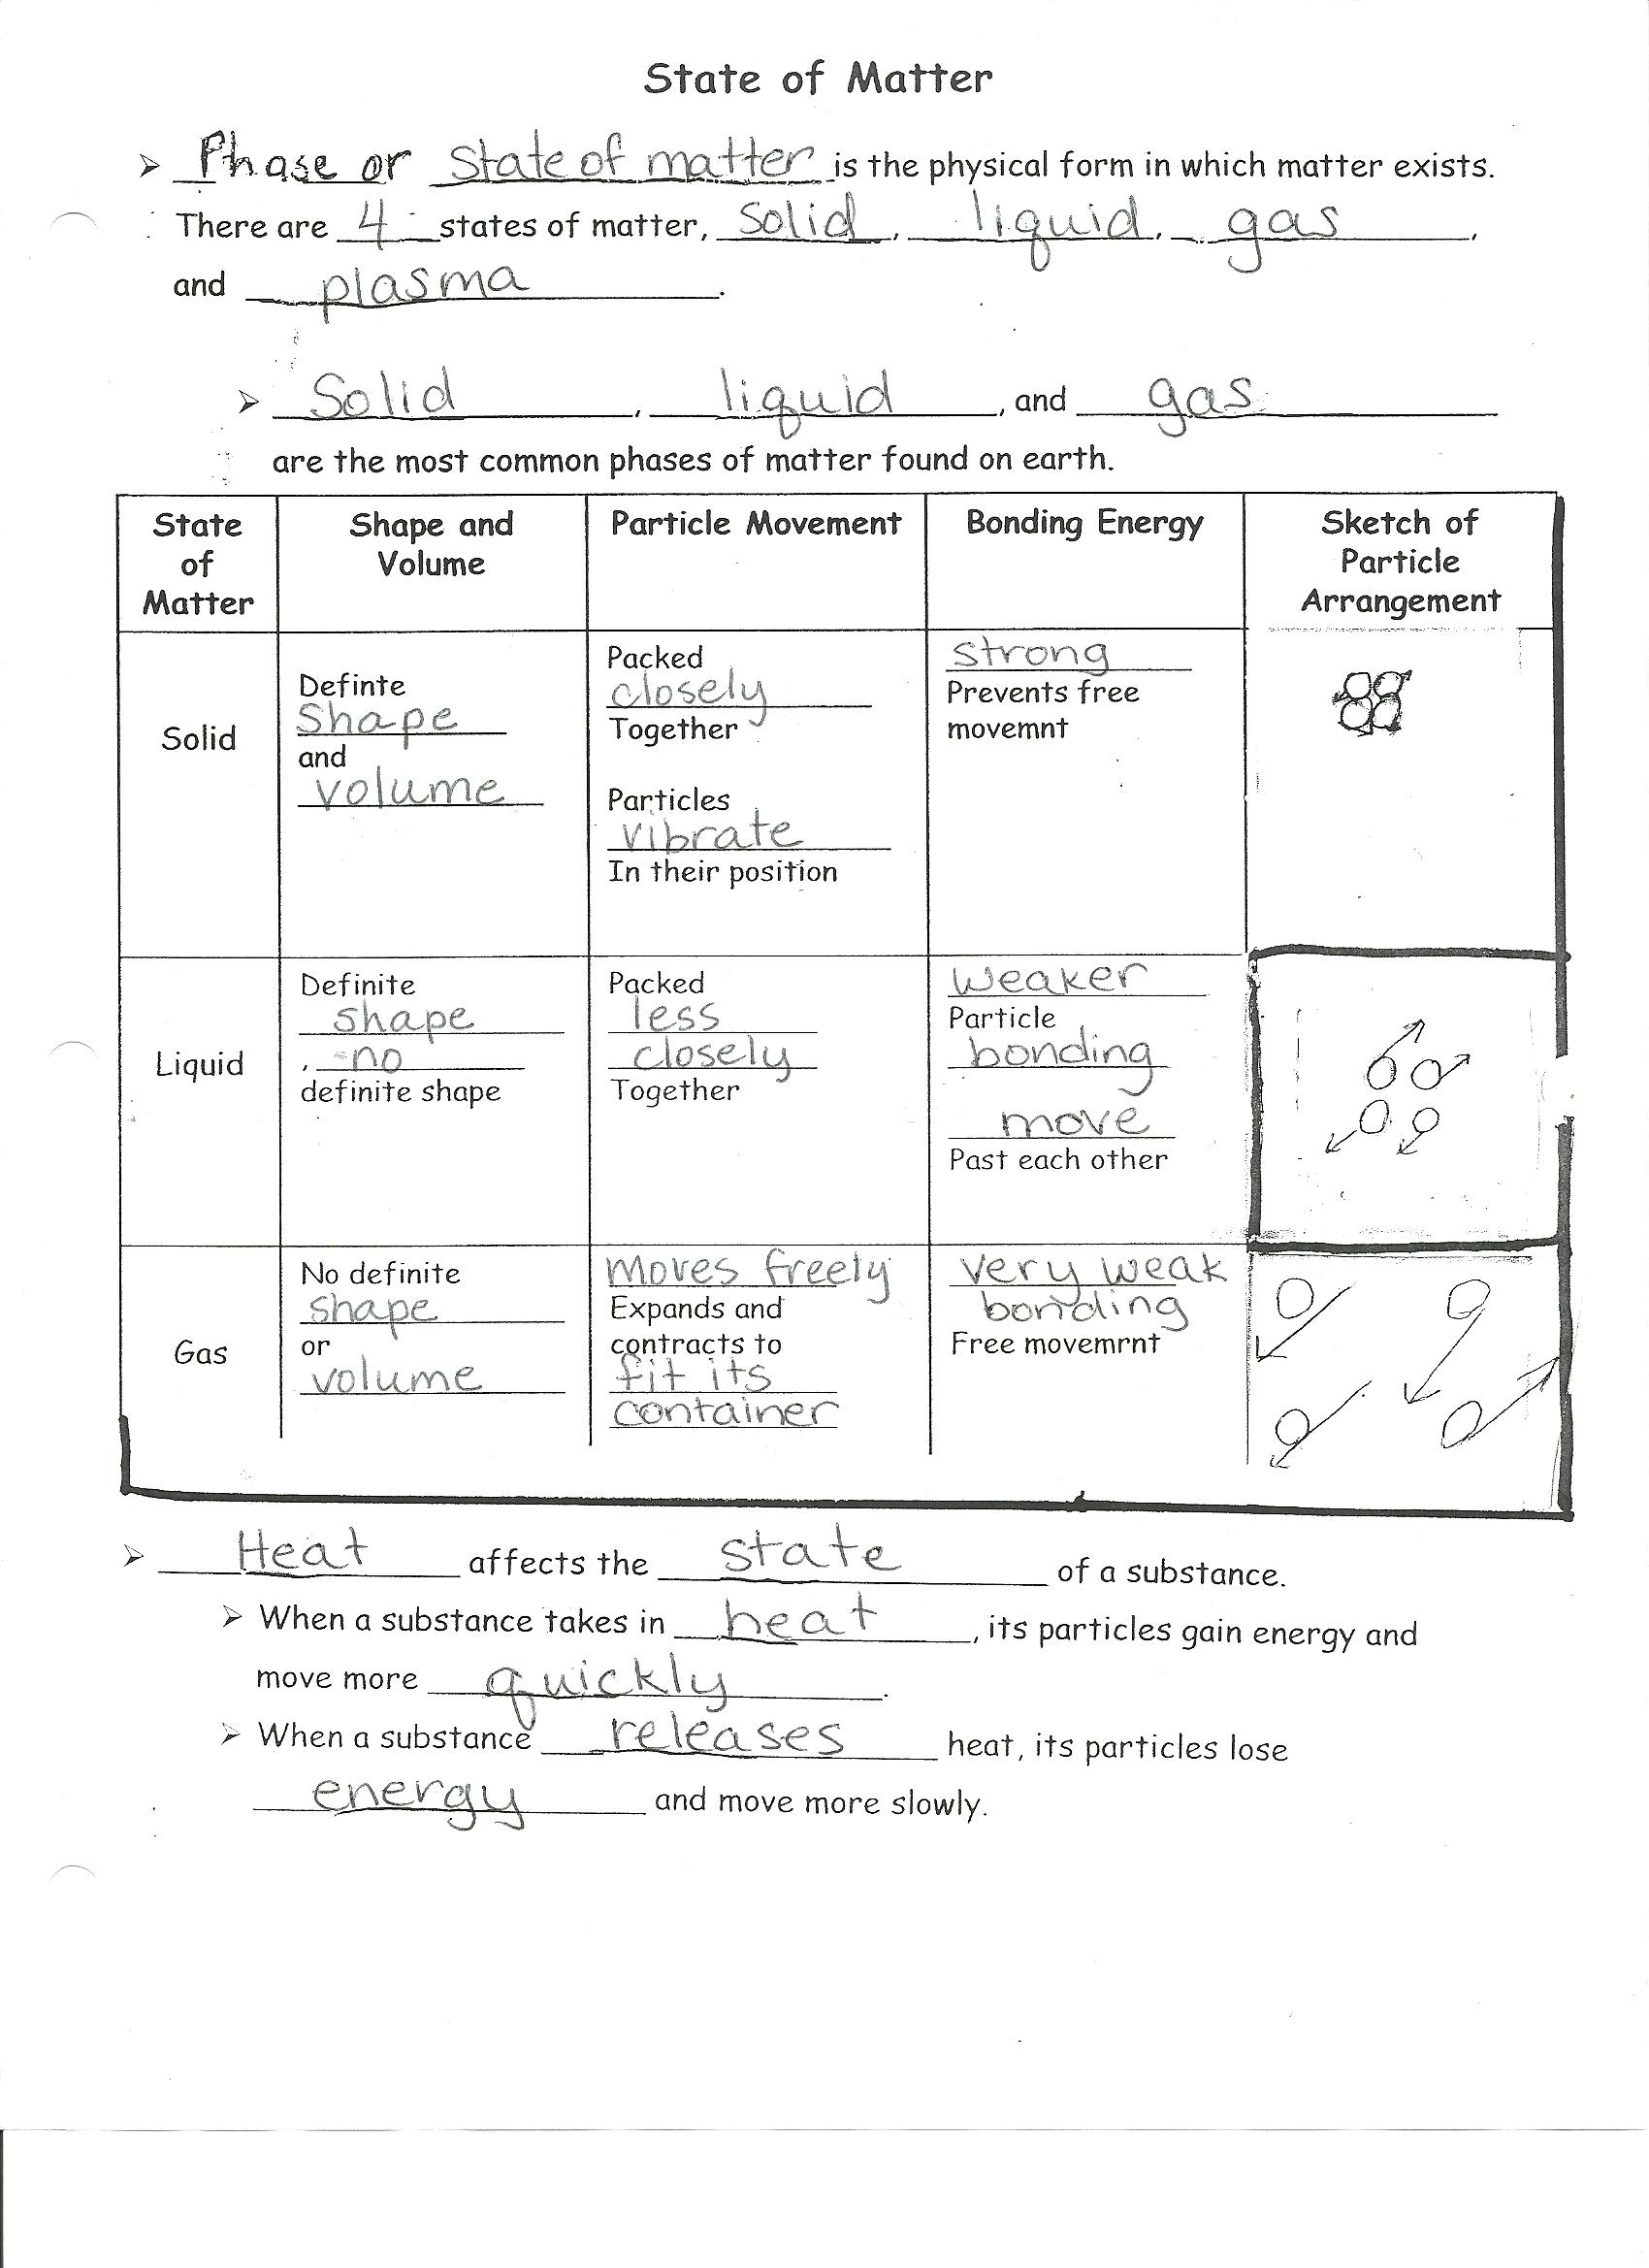 Bill Nye Phases Of Matter Worksheet Answers 1 16